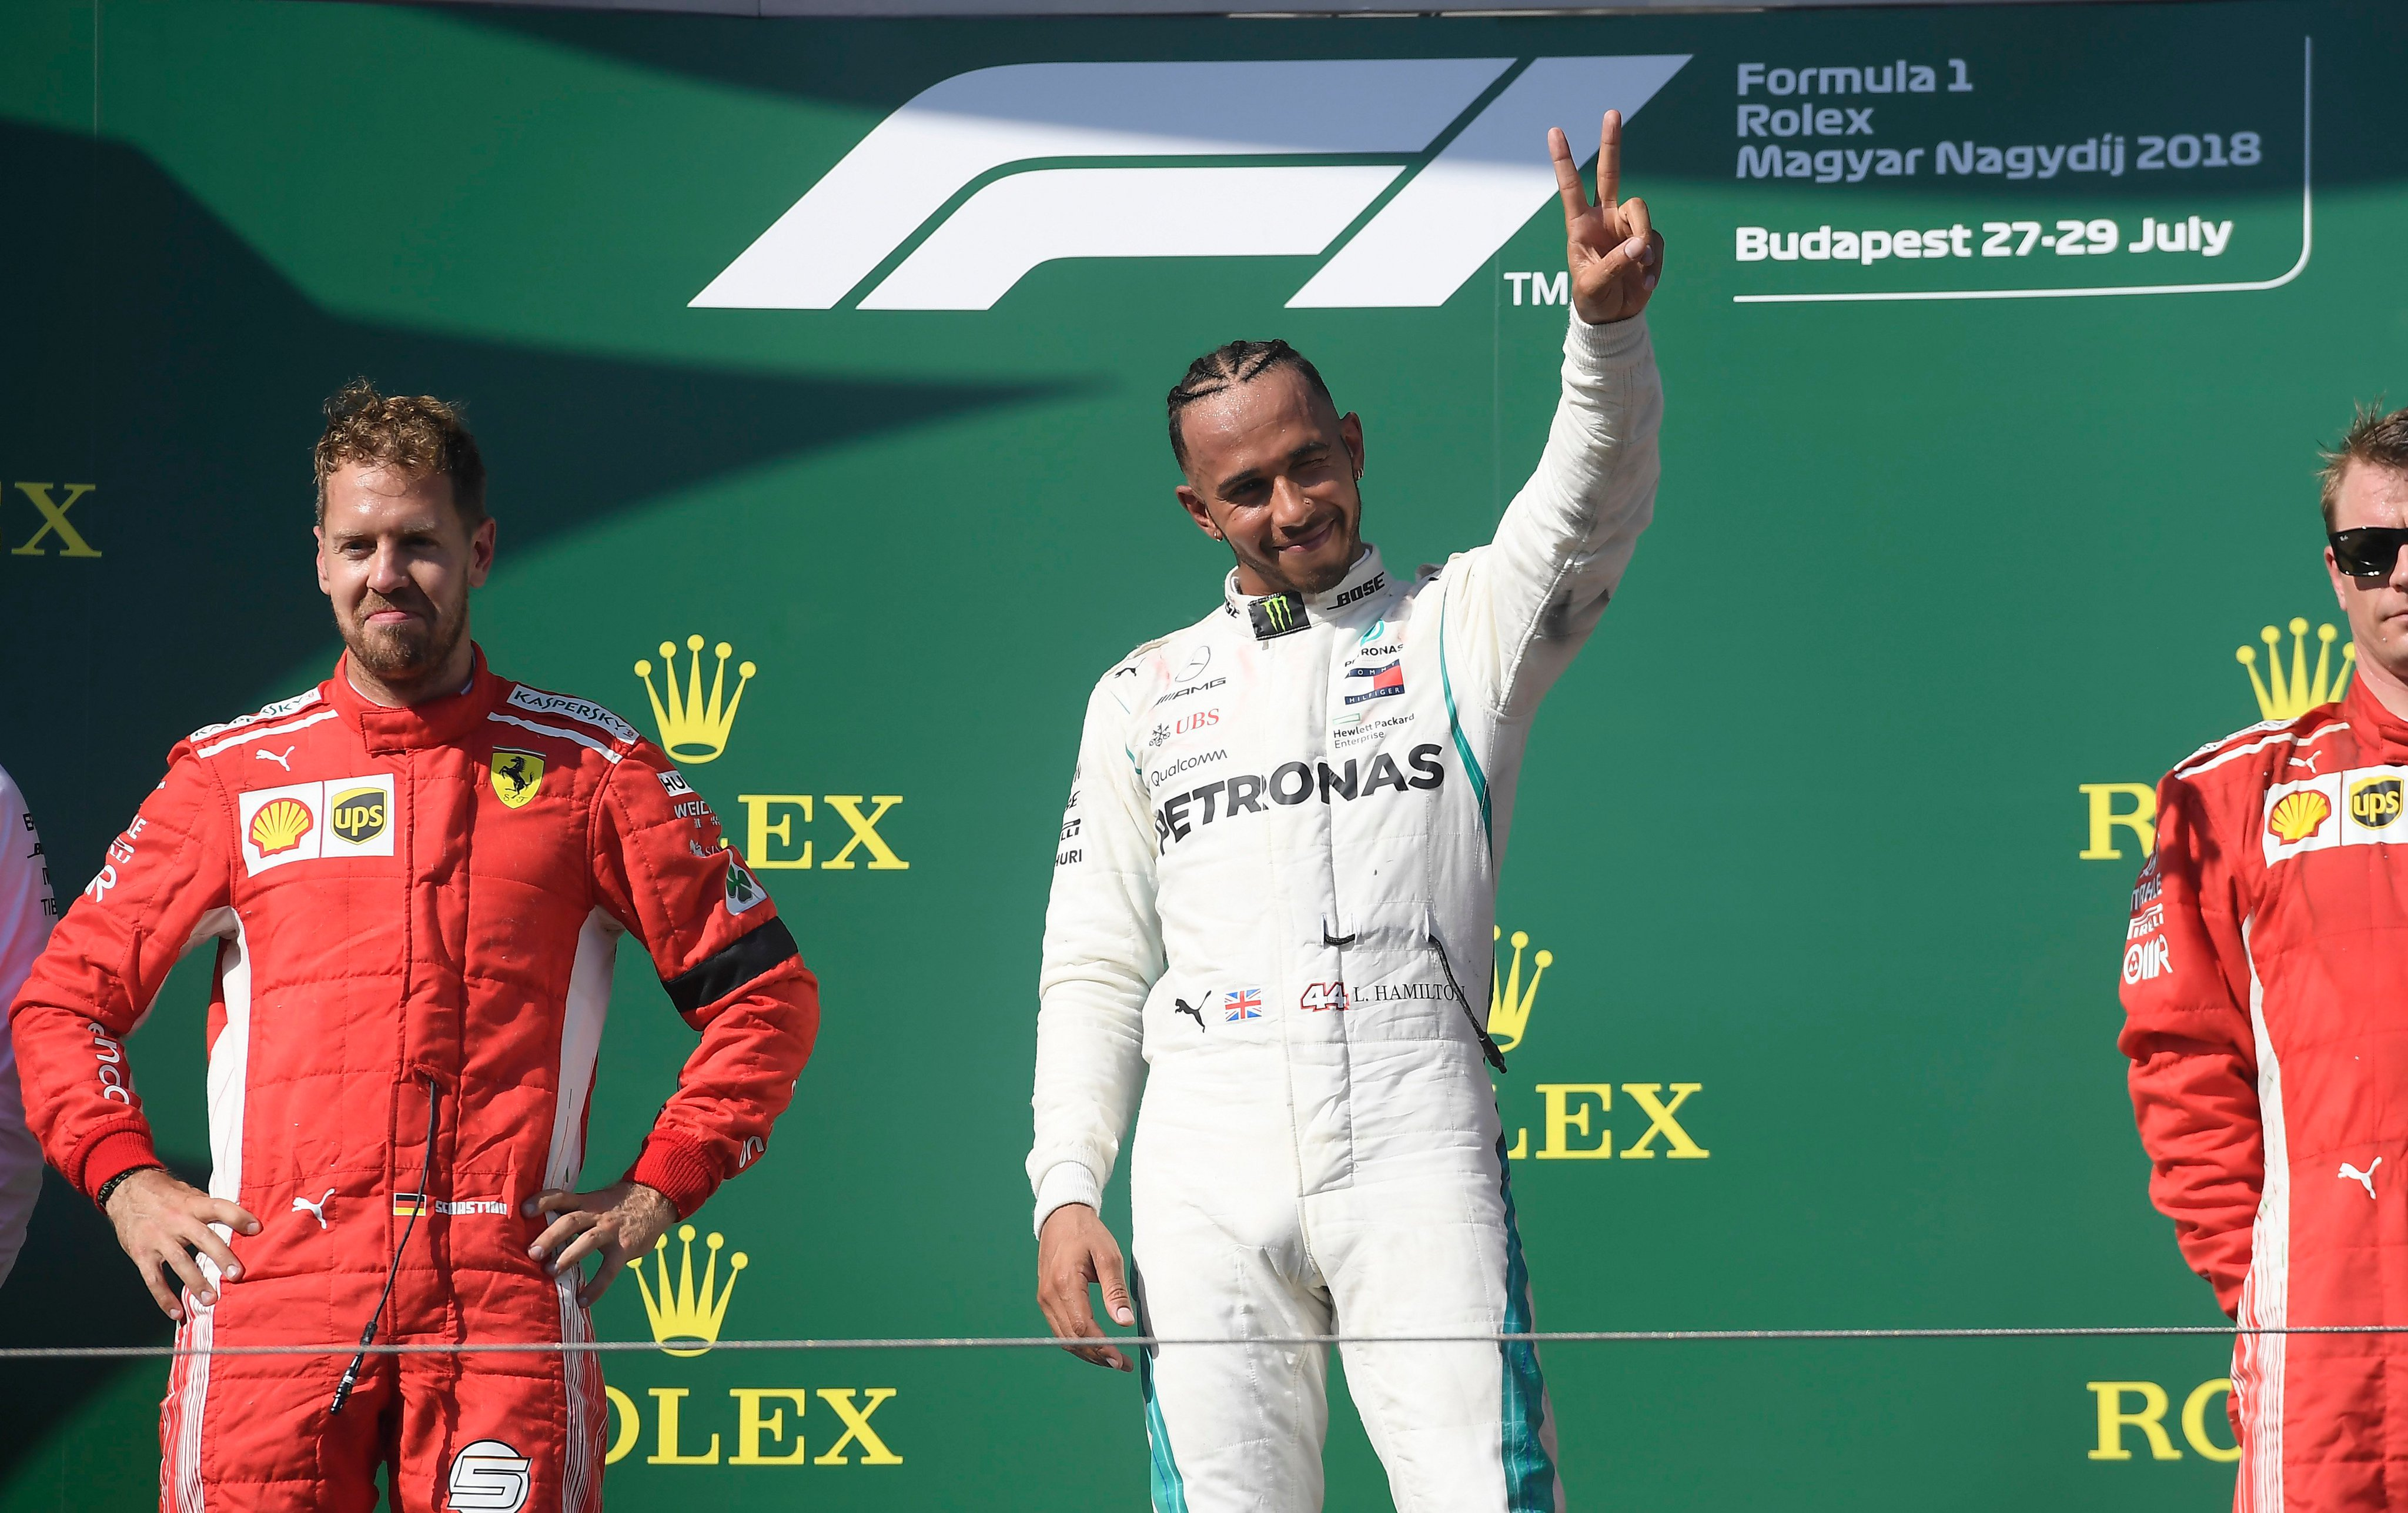 Video: Hamilton Wins Hungarian Grand Prix